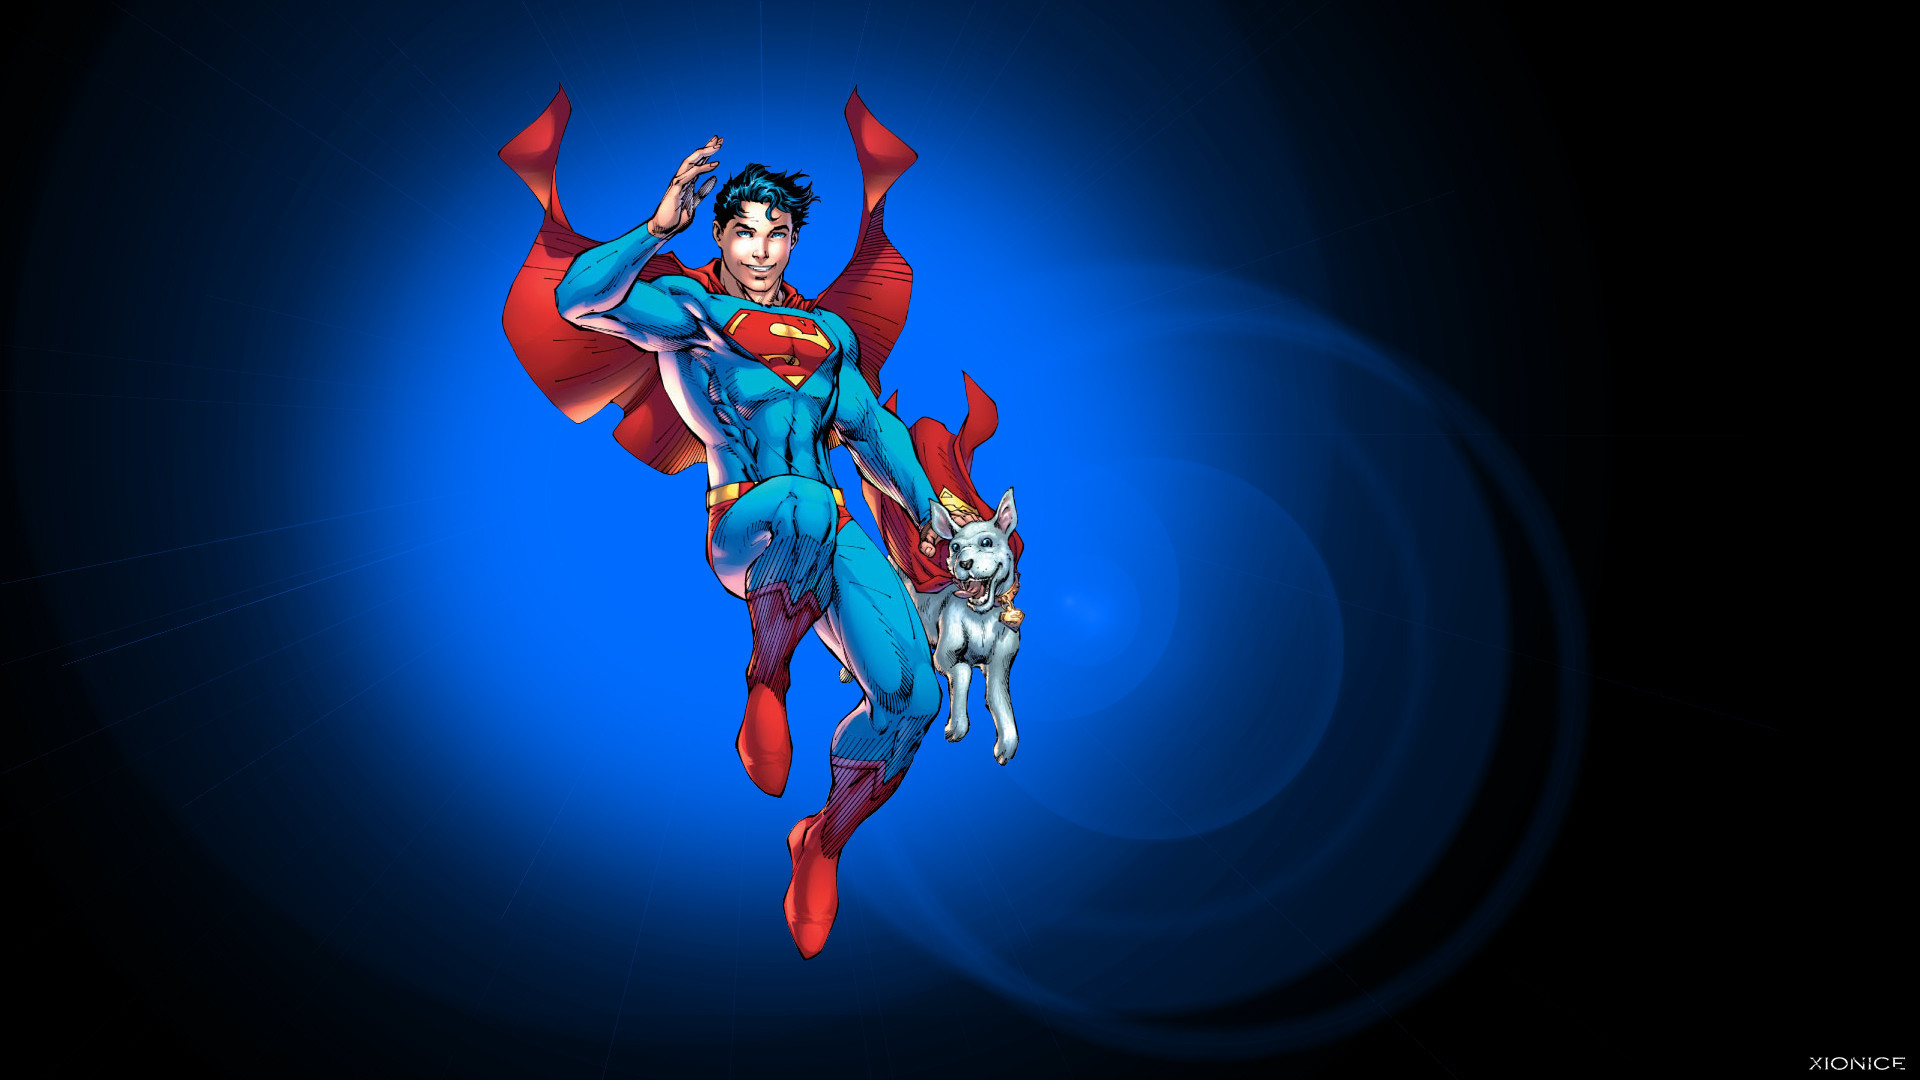 Res: 1920x1080, Superboy Wallpapers 15 - 1920 X 1080